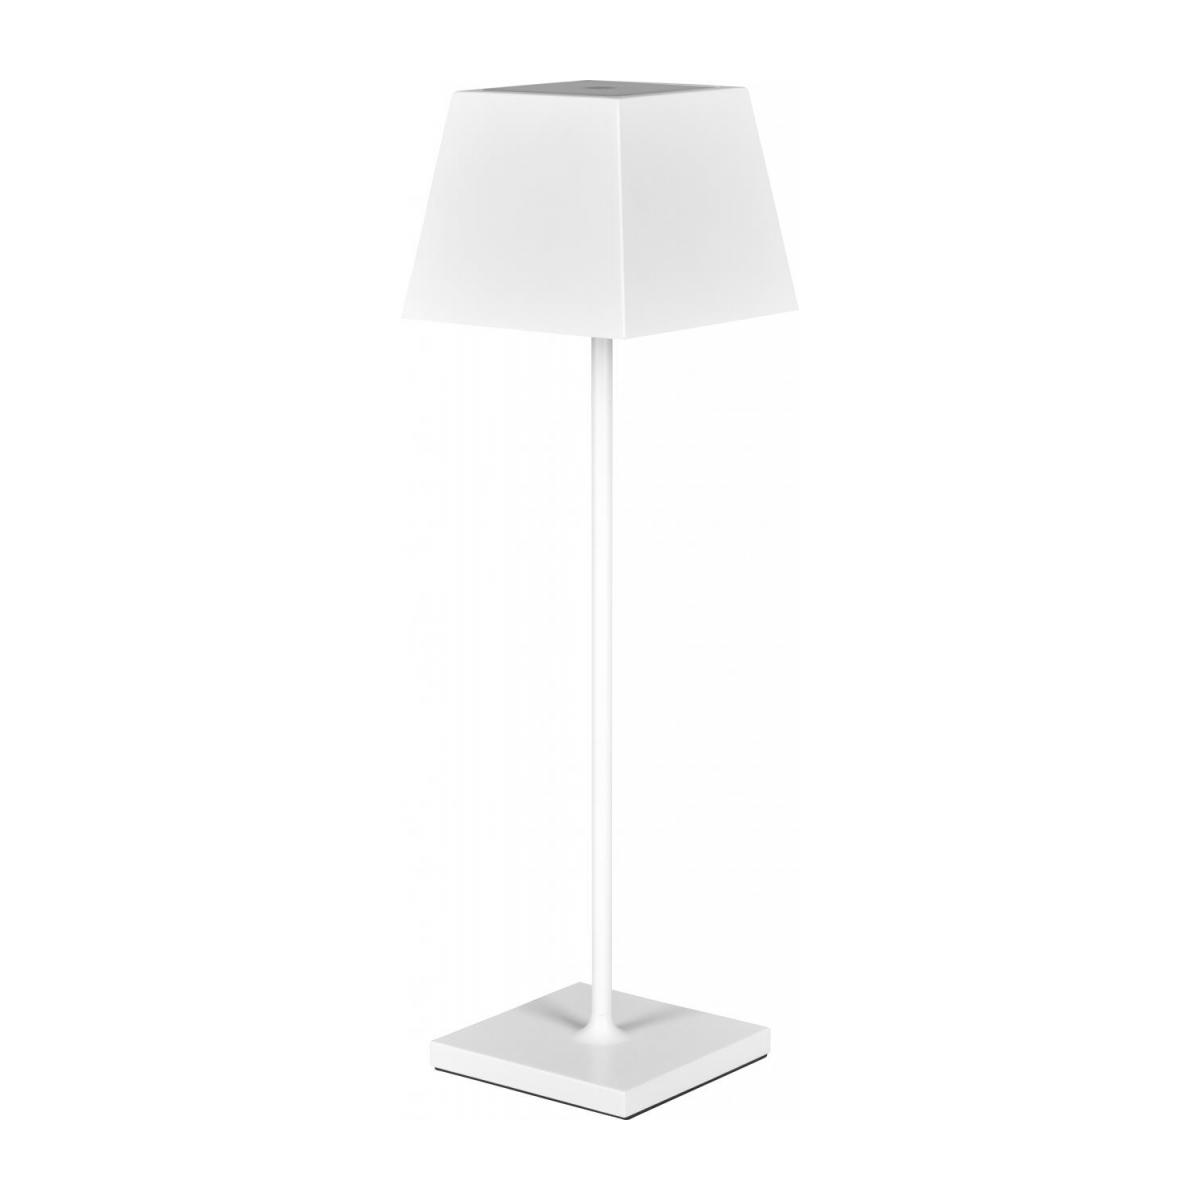 Lampe de table nomade à LED IP54 en aluminium - Blanc n°1